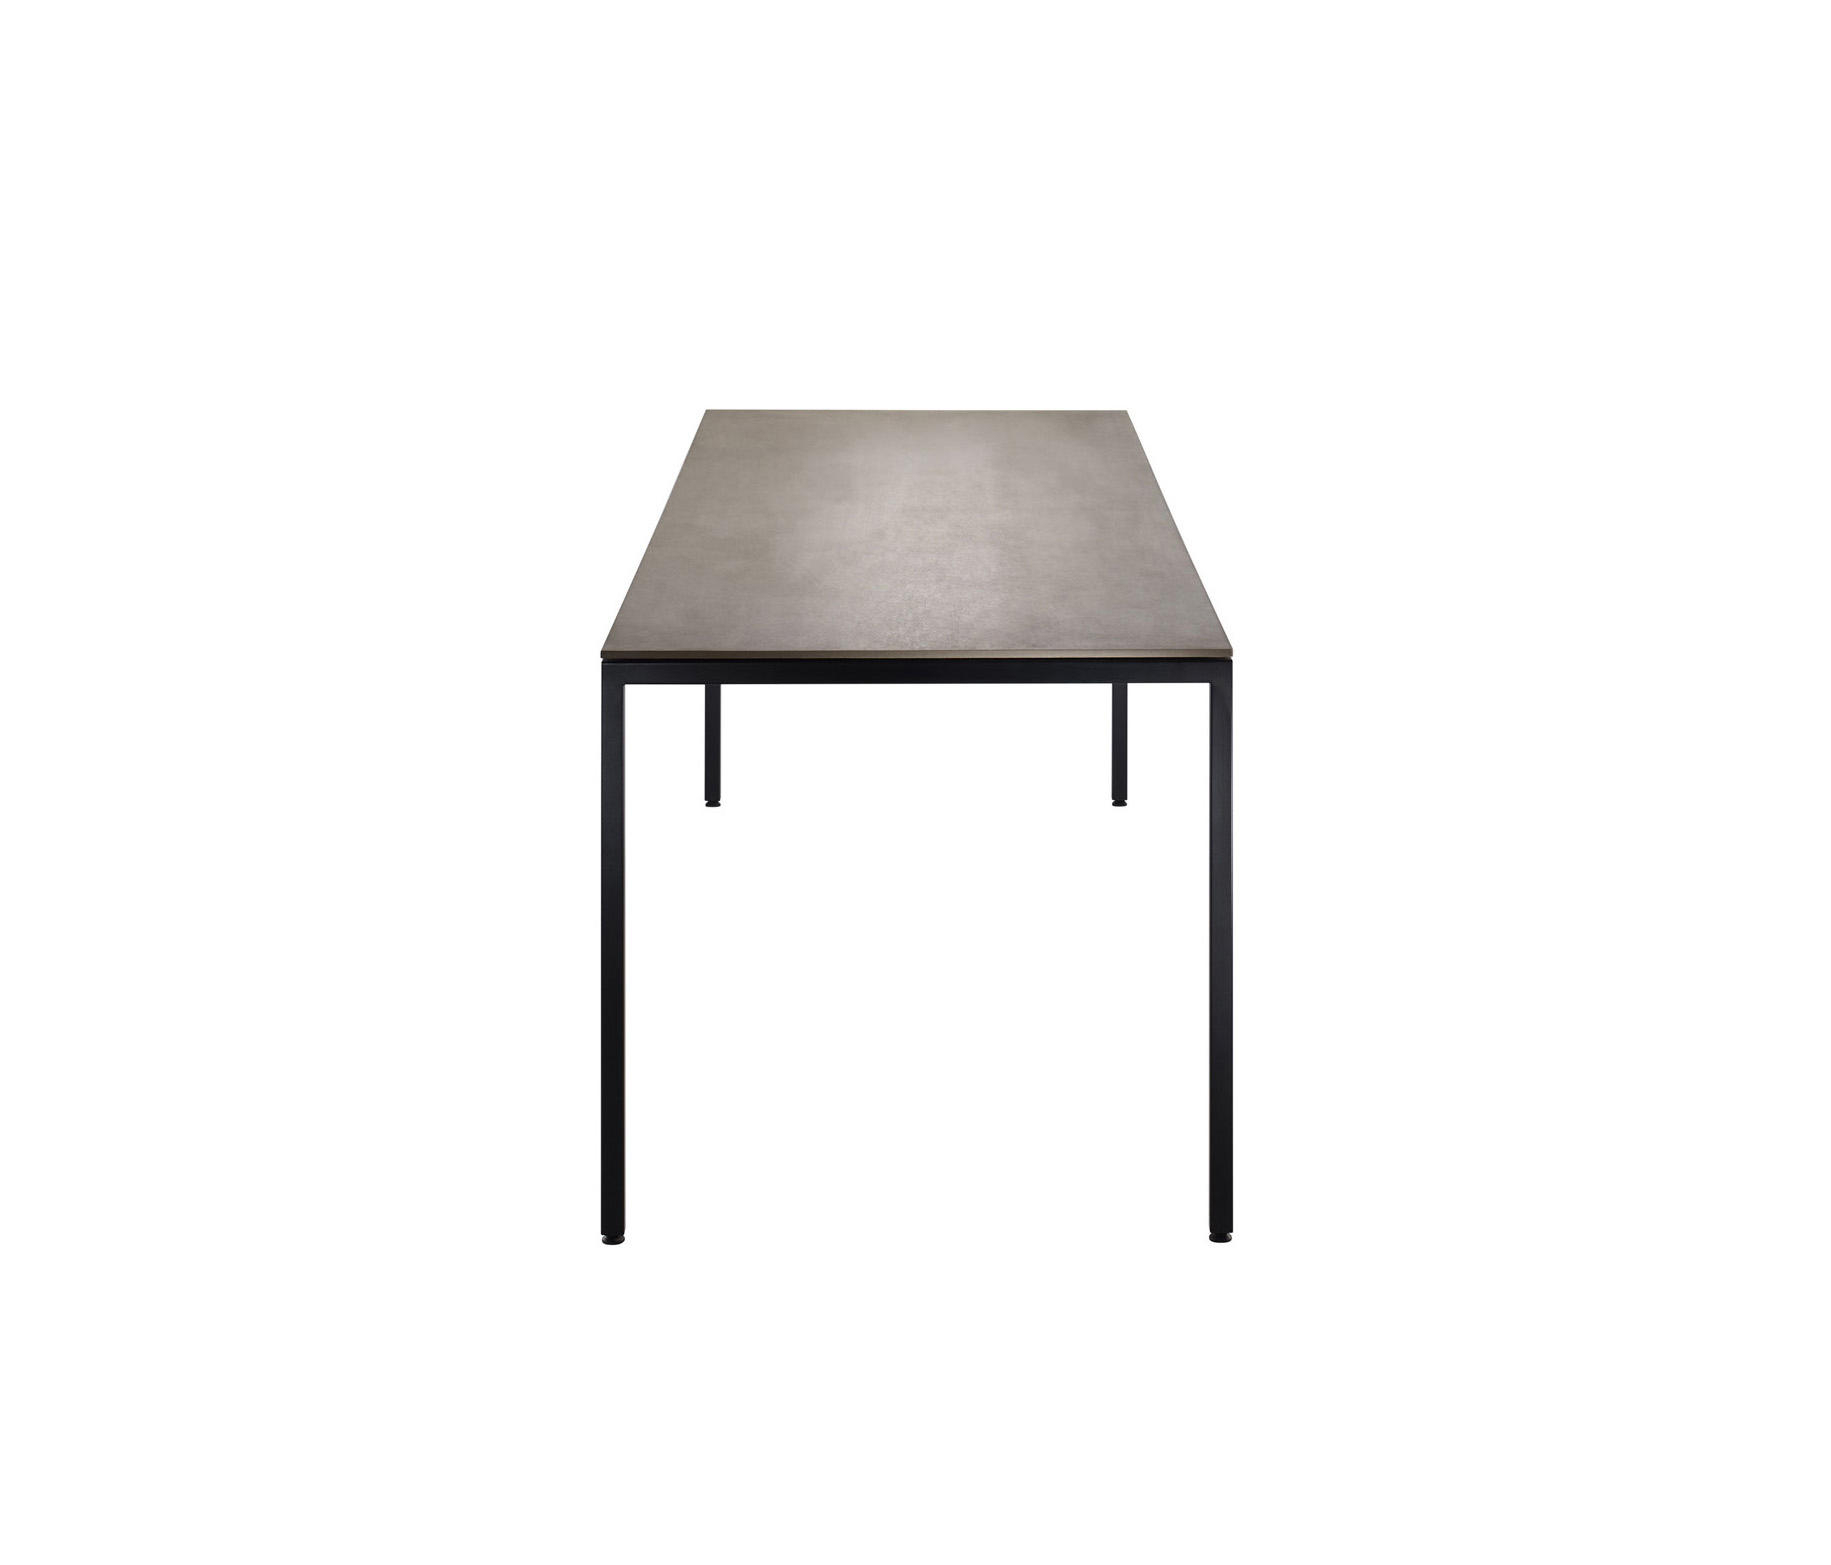 M38 Table – Dining Tables From Tecta | Architonic Throughout Best And Newest Bechet 38'' Dining Tables (View 12 of 15)